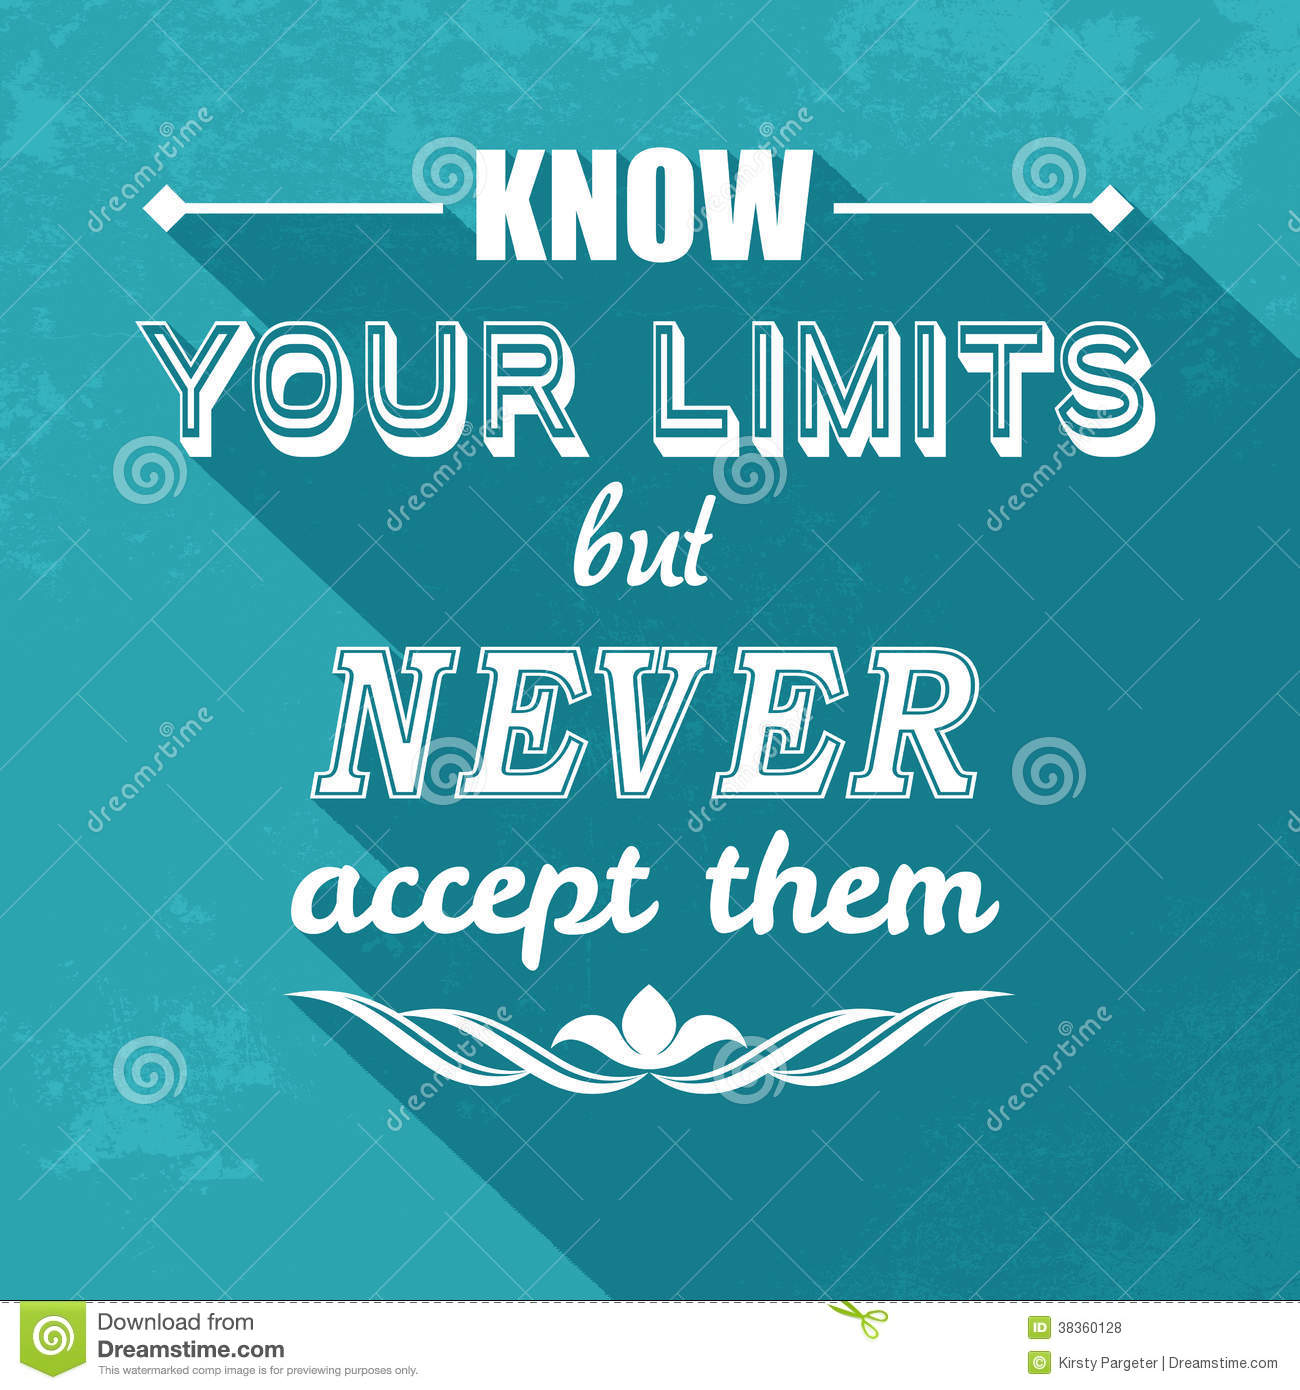 Dow Quotes Real Time: Kow Your Limits Quotation Royalty Free Stock Photos